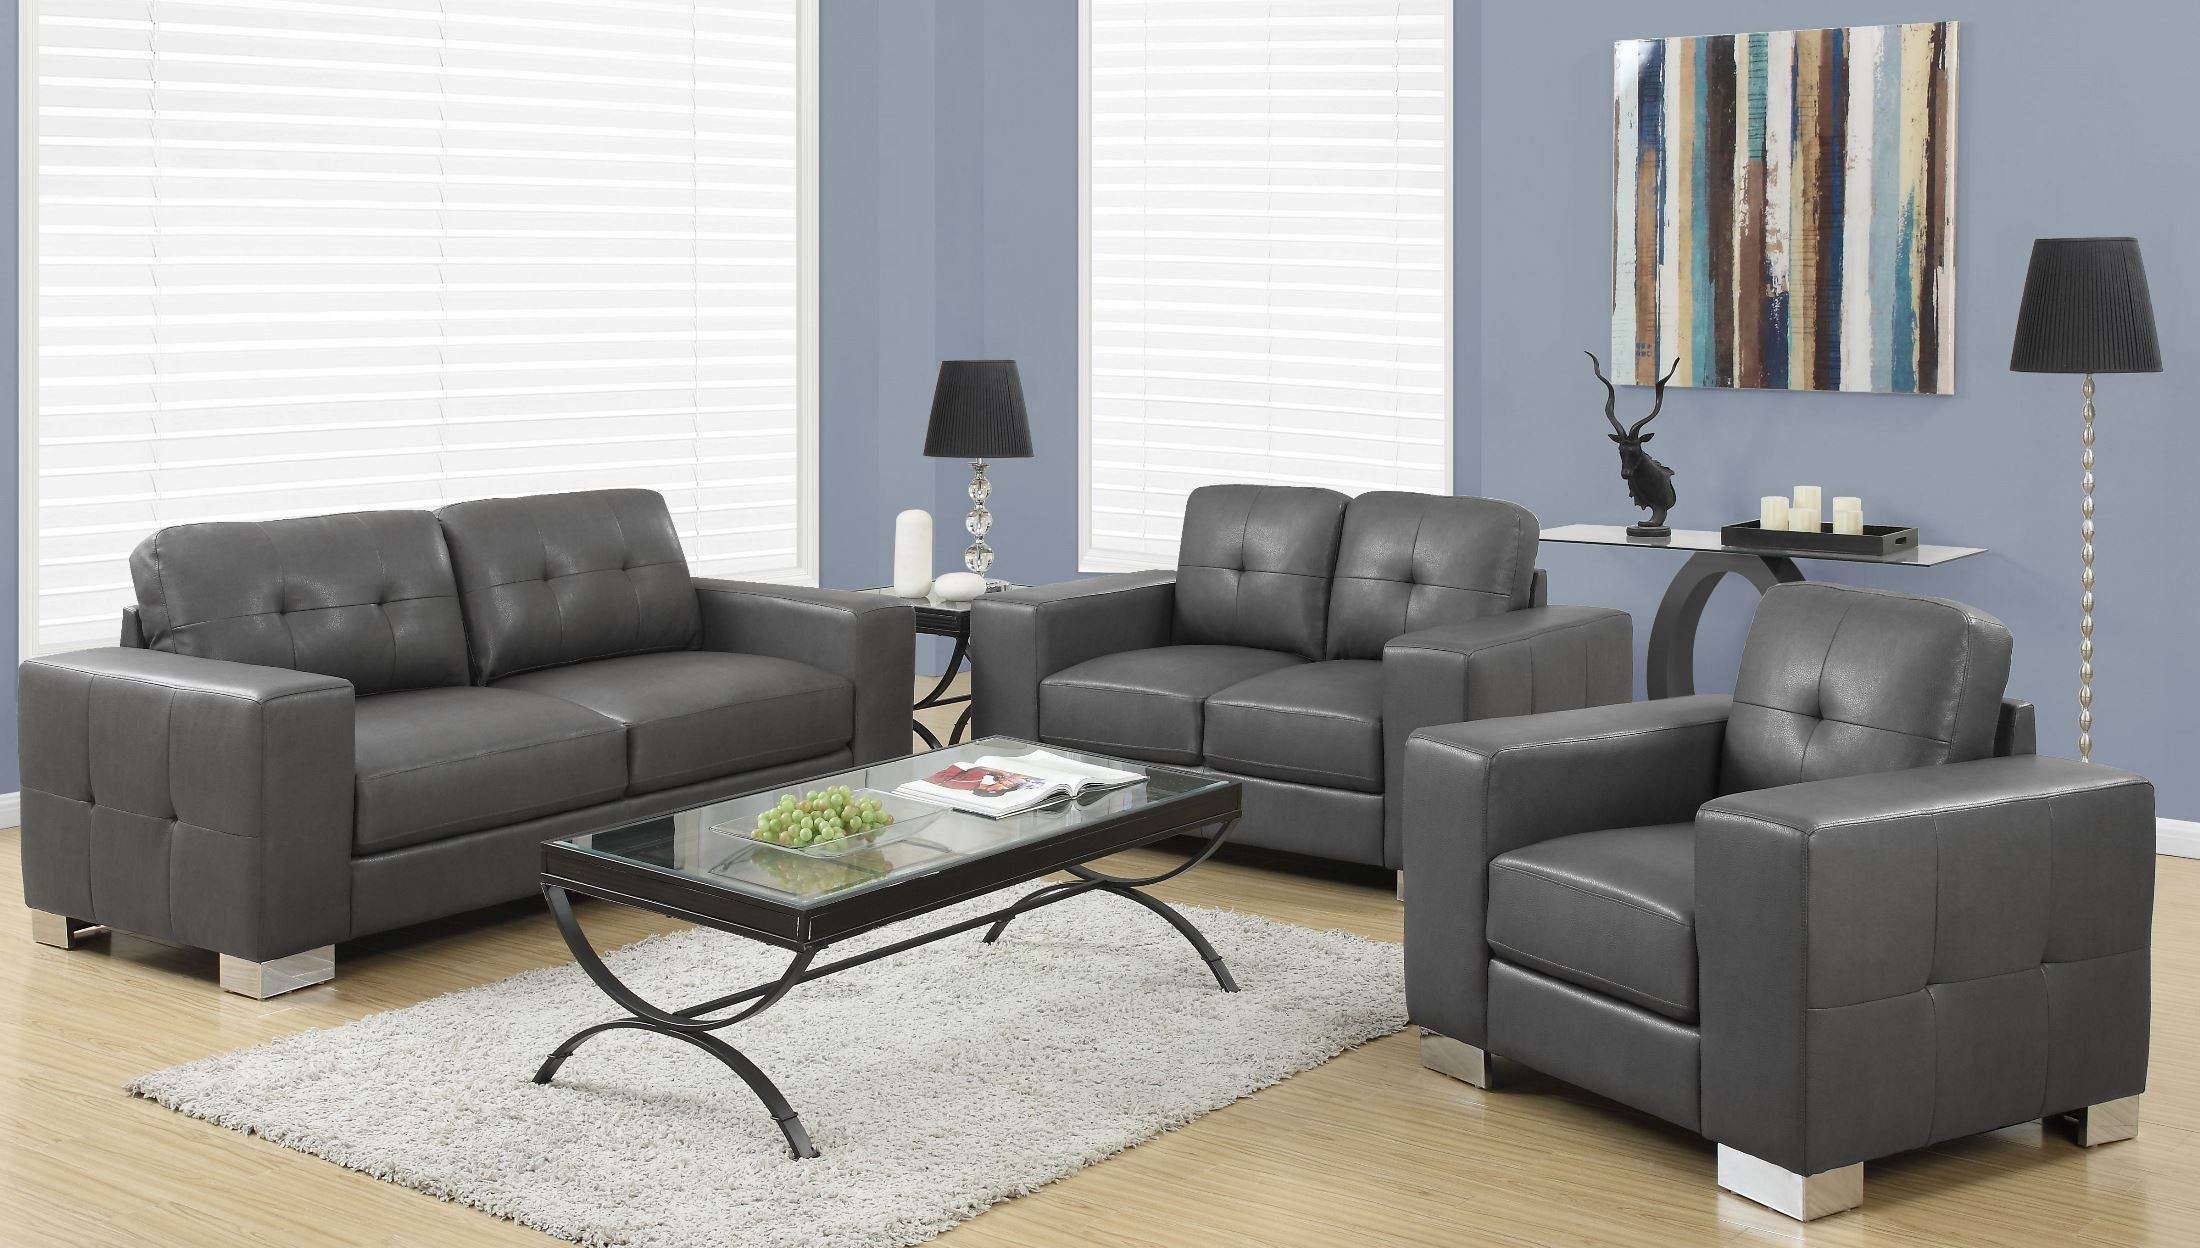 8223gy Charcoal Gray Bonded Leather Living Room Set From Monarch Coleman Furniture